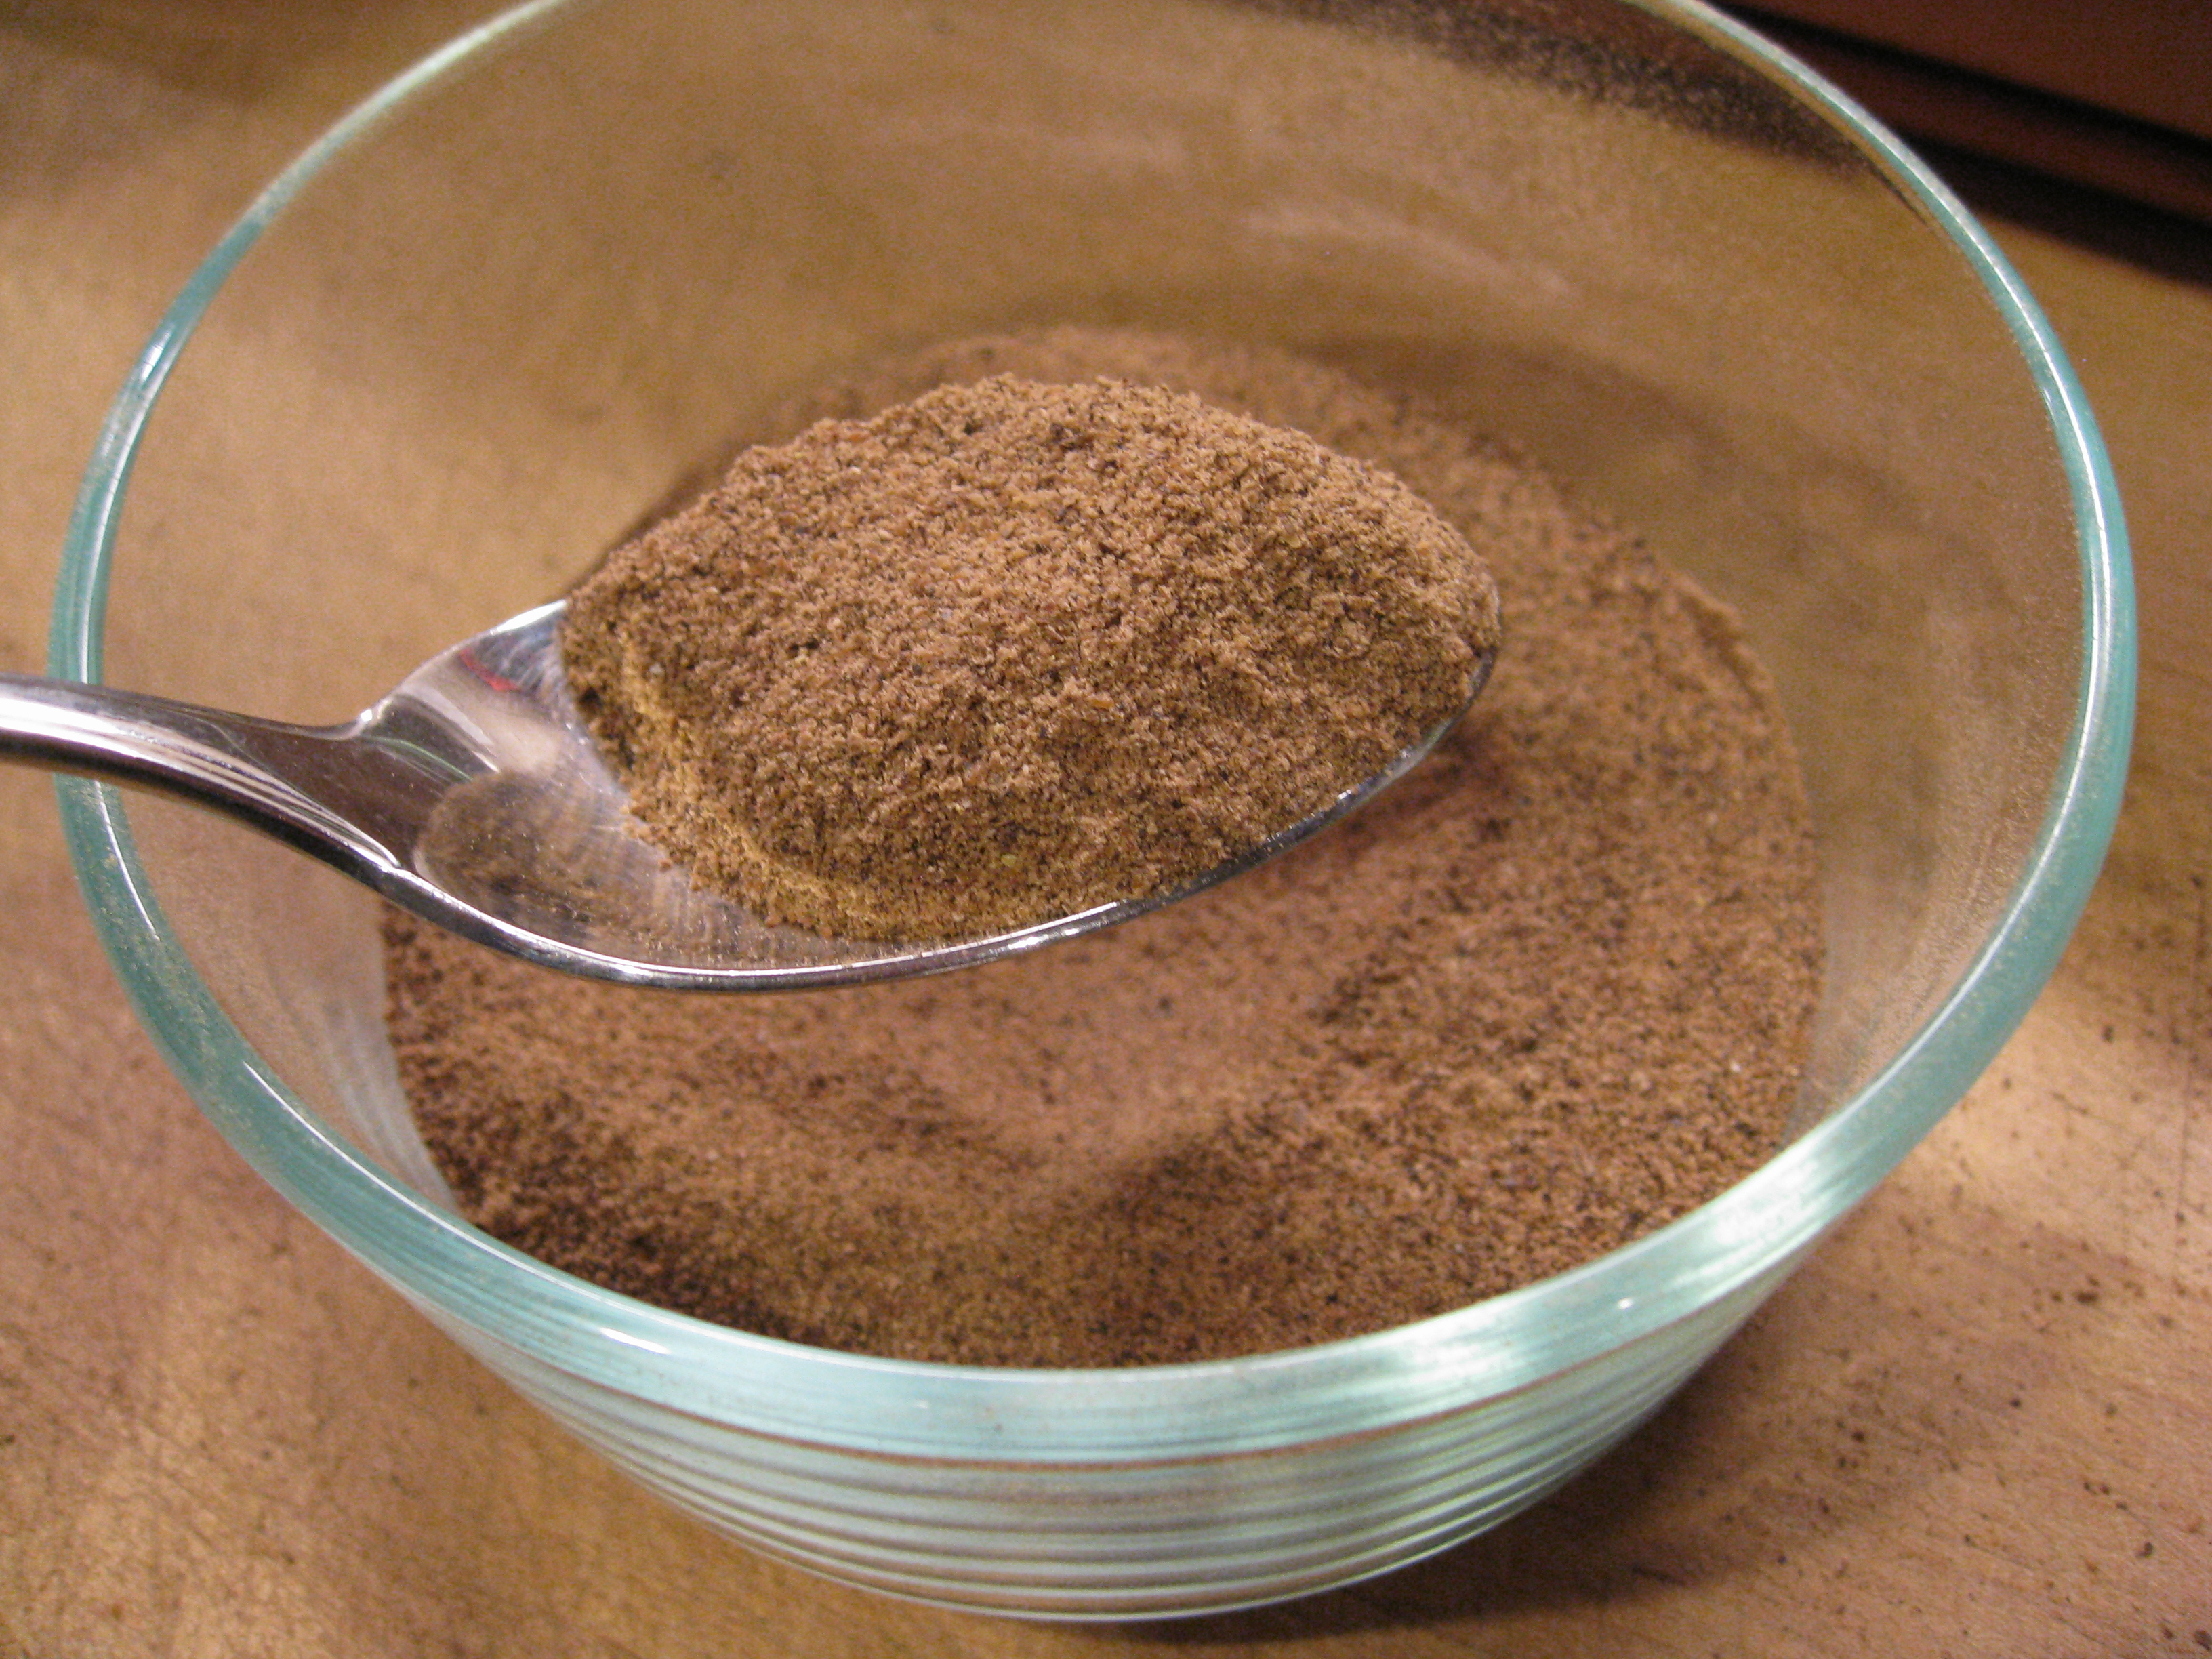 Carob is naturally sweet, but you can add honey or other sweetener if you like.